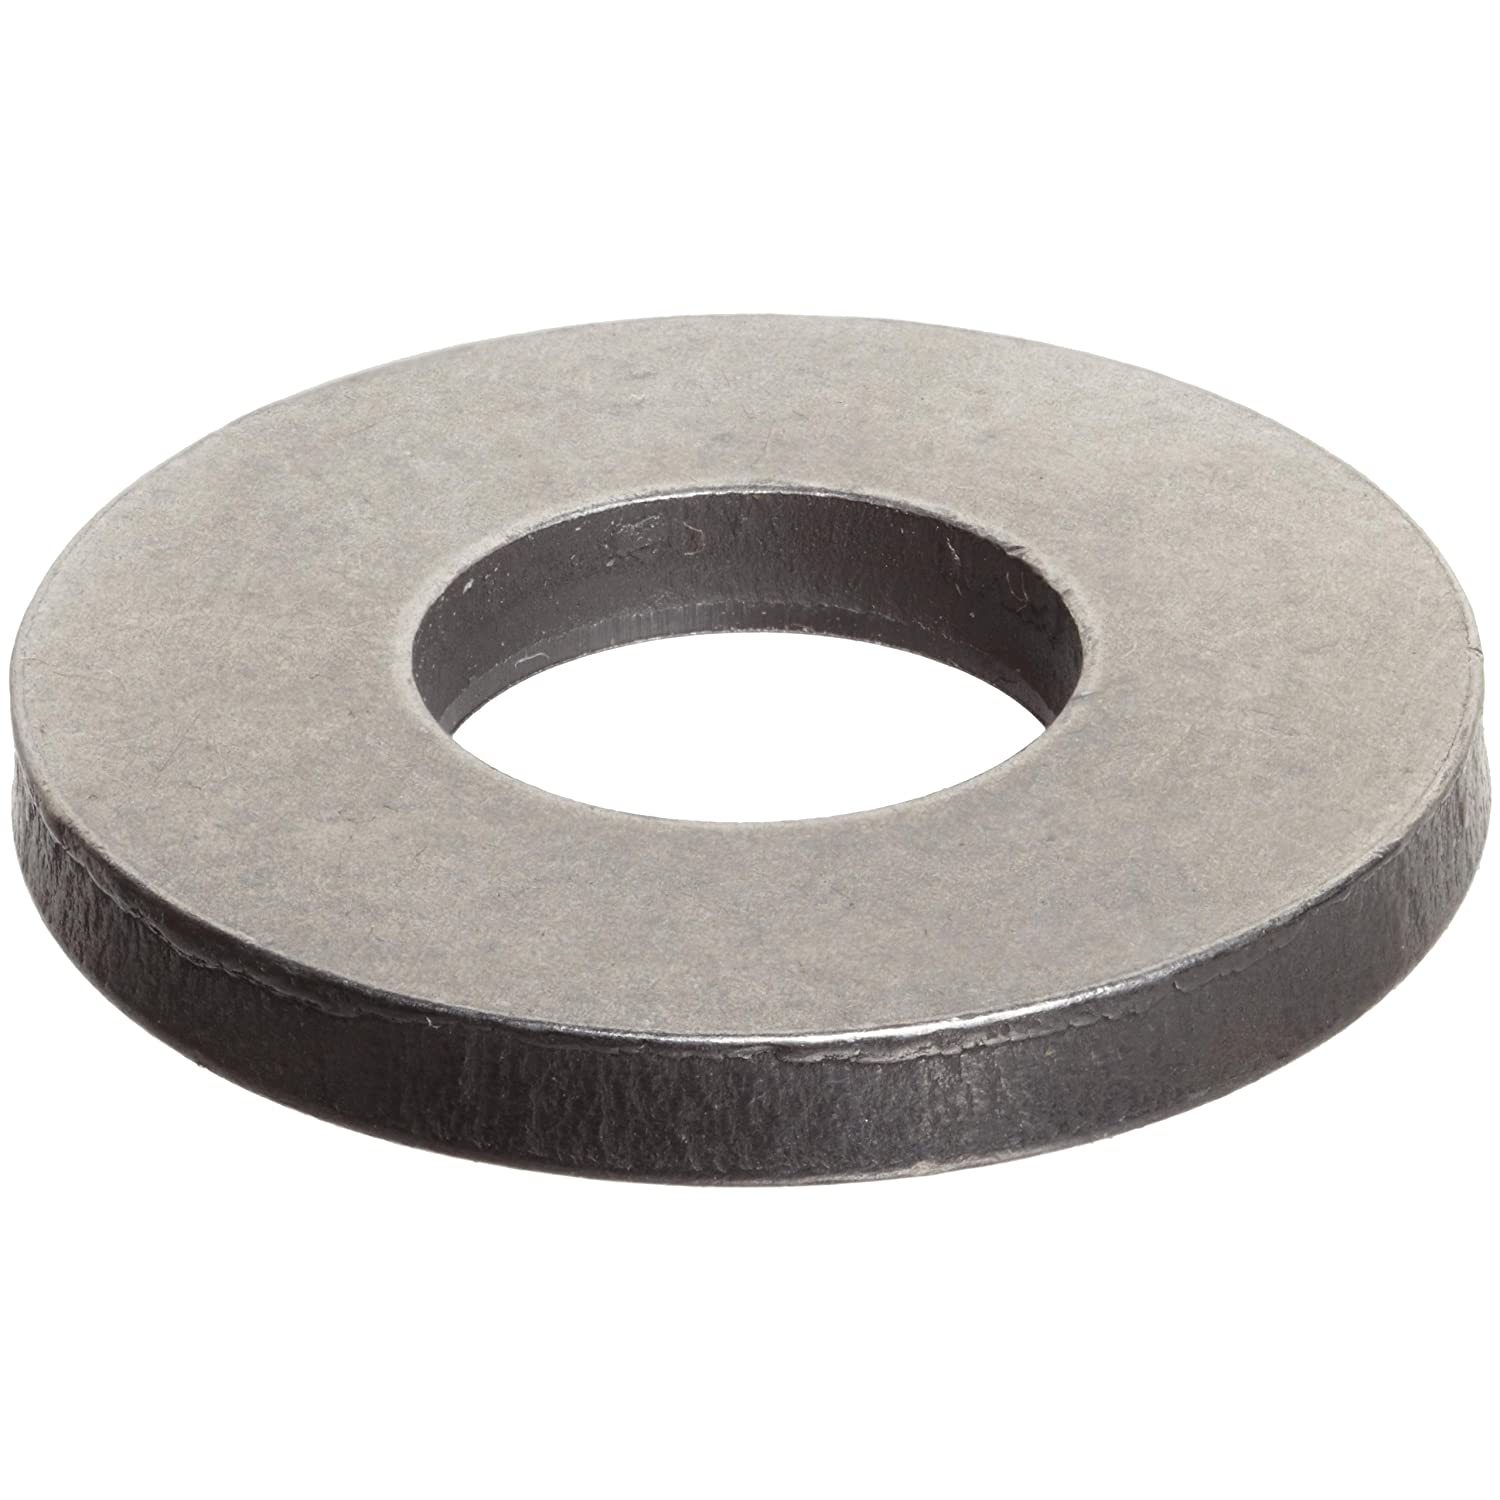 316 Stainless Steel Round Shim Small Parts 316SS1180 Pack of 5 Pack of 5 ASTM A666 Annealed Mill 0.125 Thickness Finish 0.125 Thickness 1-3//8 ID 1-7//8 OD 1-3//8 ID Hard Temper Unpolished 1-7//8 OD